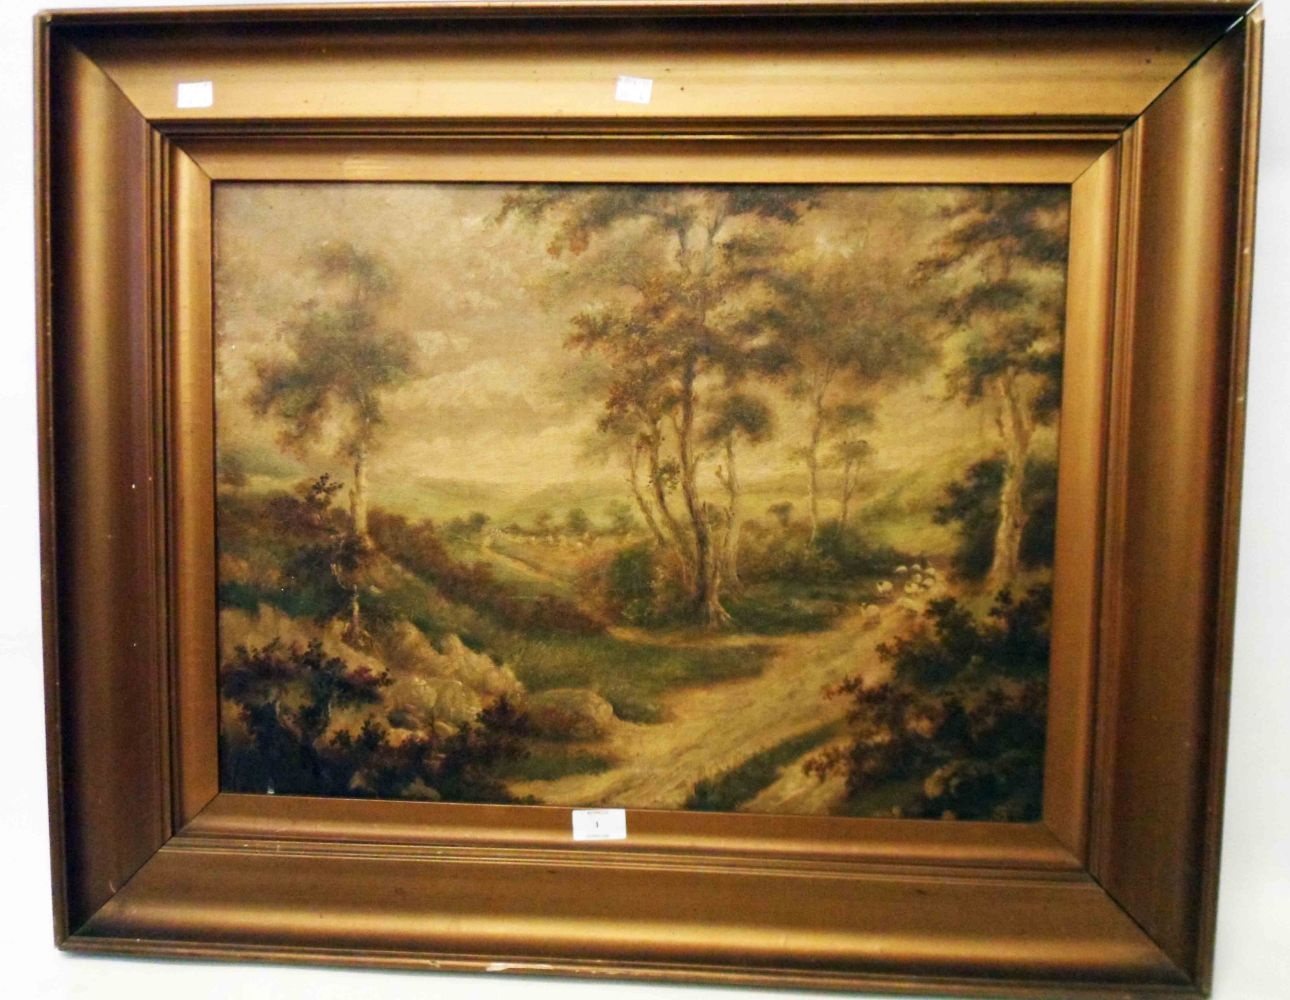 Timed Online Auction of Unreserved Pictures, Paintings and Books